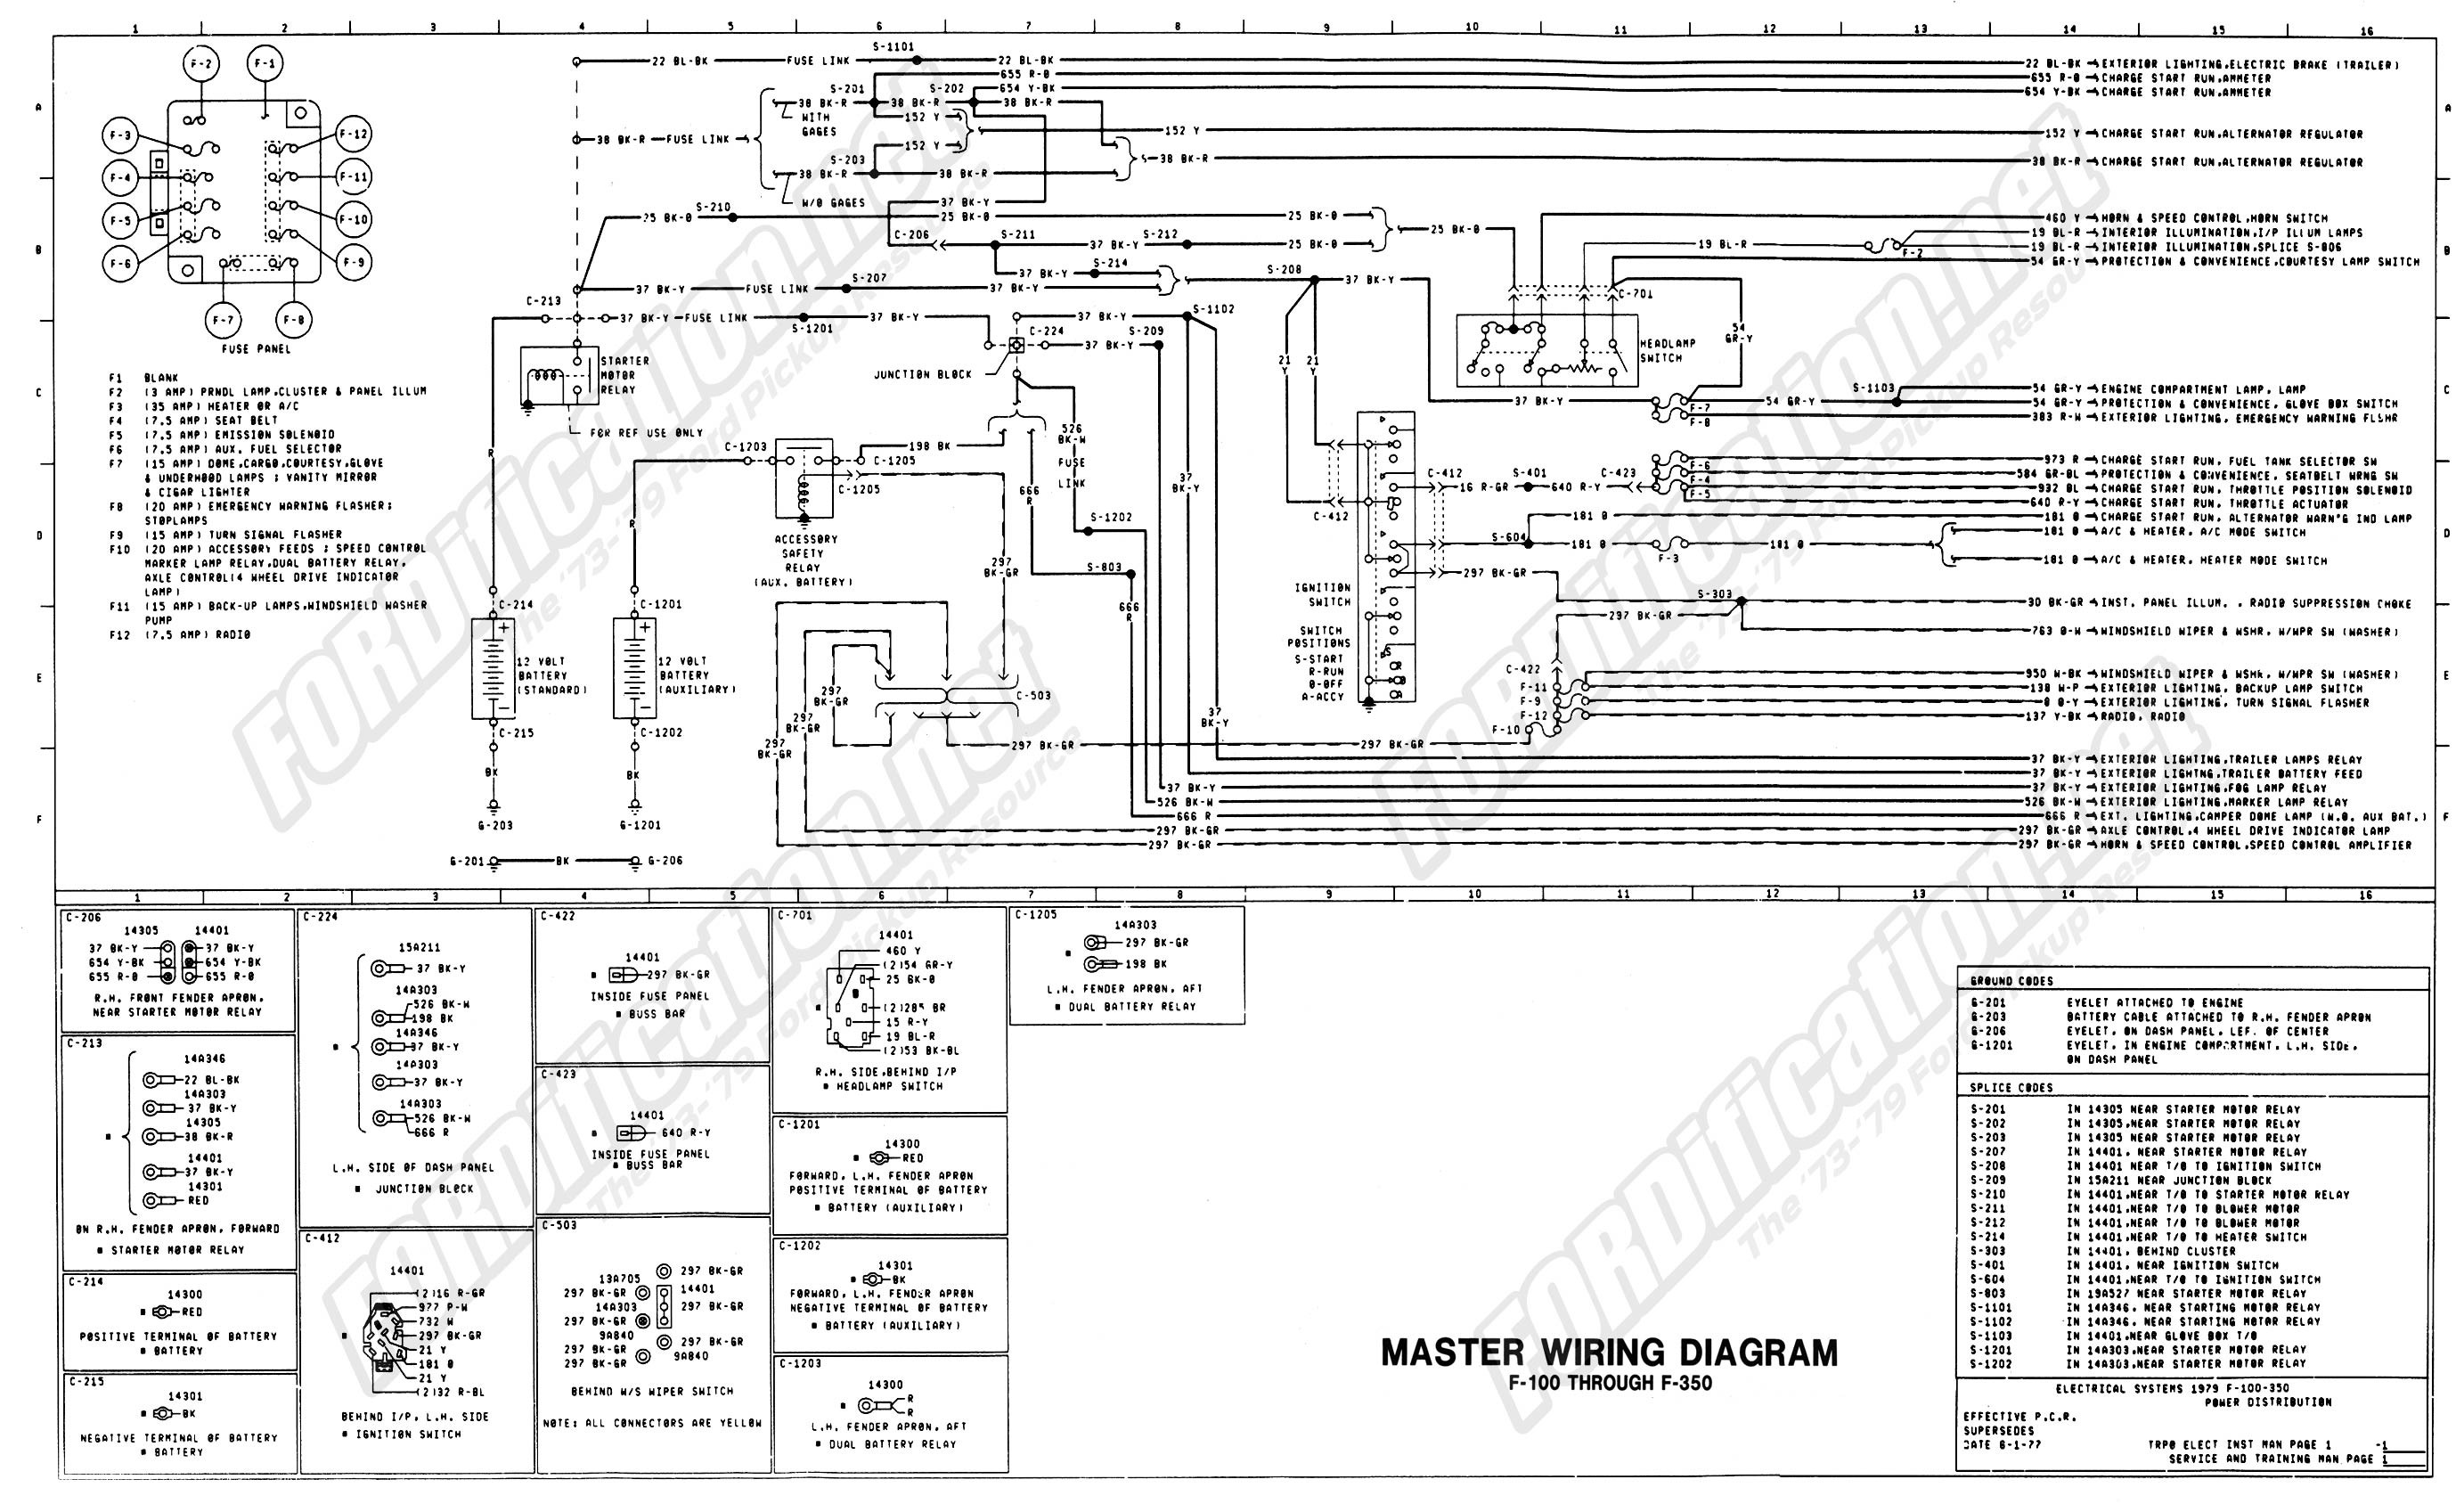 2013 Ford Escape Engine Diagram Truck Brake Diagrams F700 Http Taurus Interceptor Wiring 79 F150 Solenoid Enthusiasts Forums Of